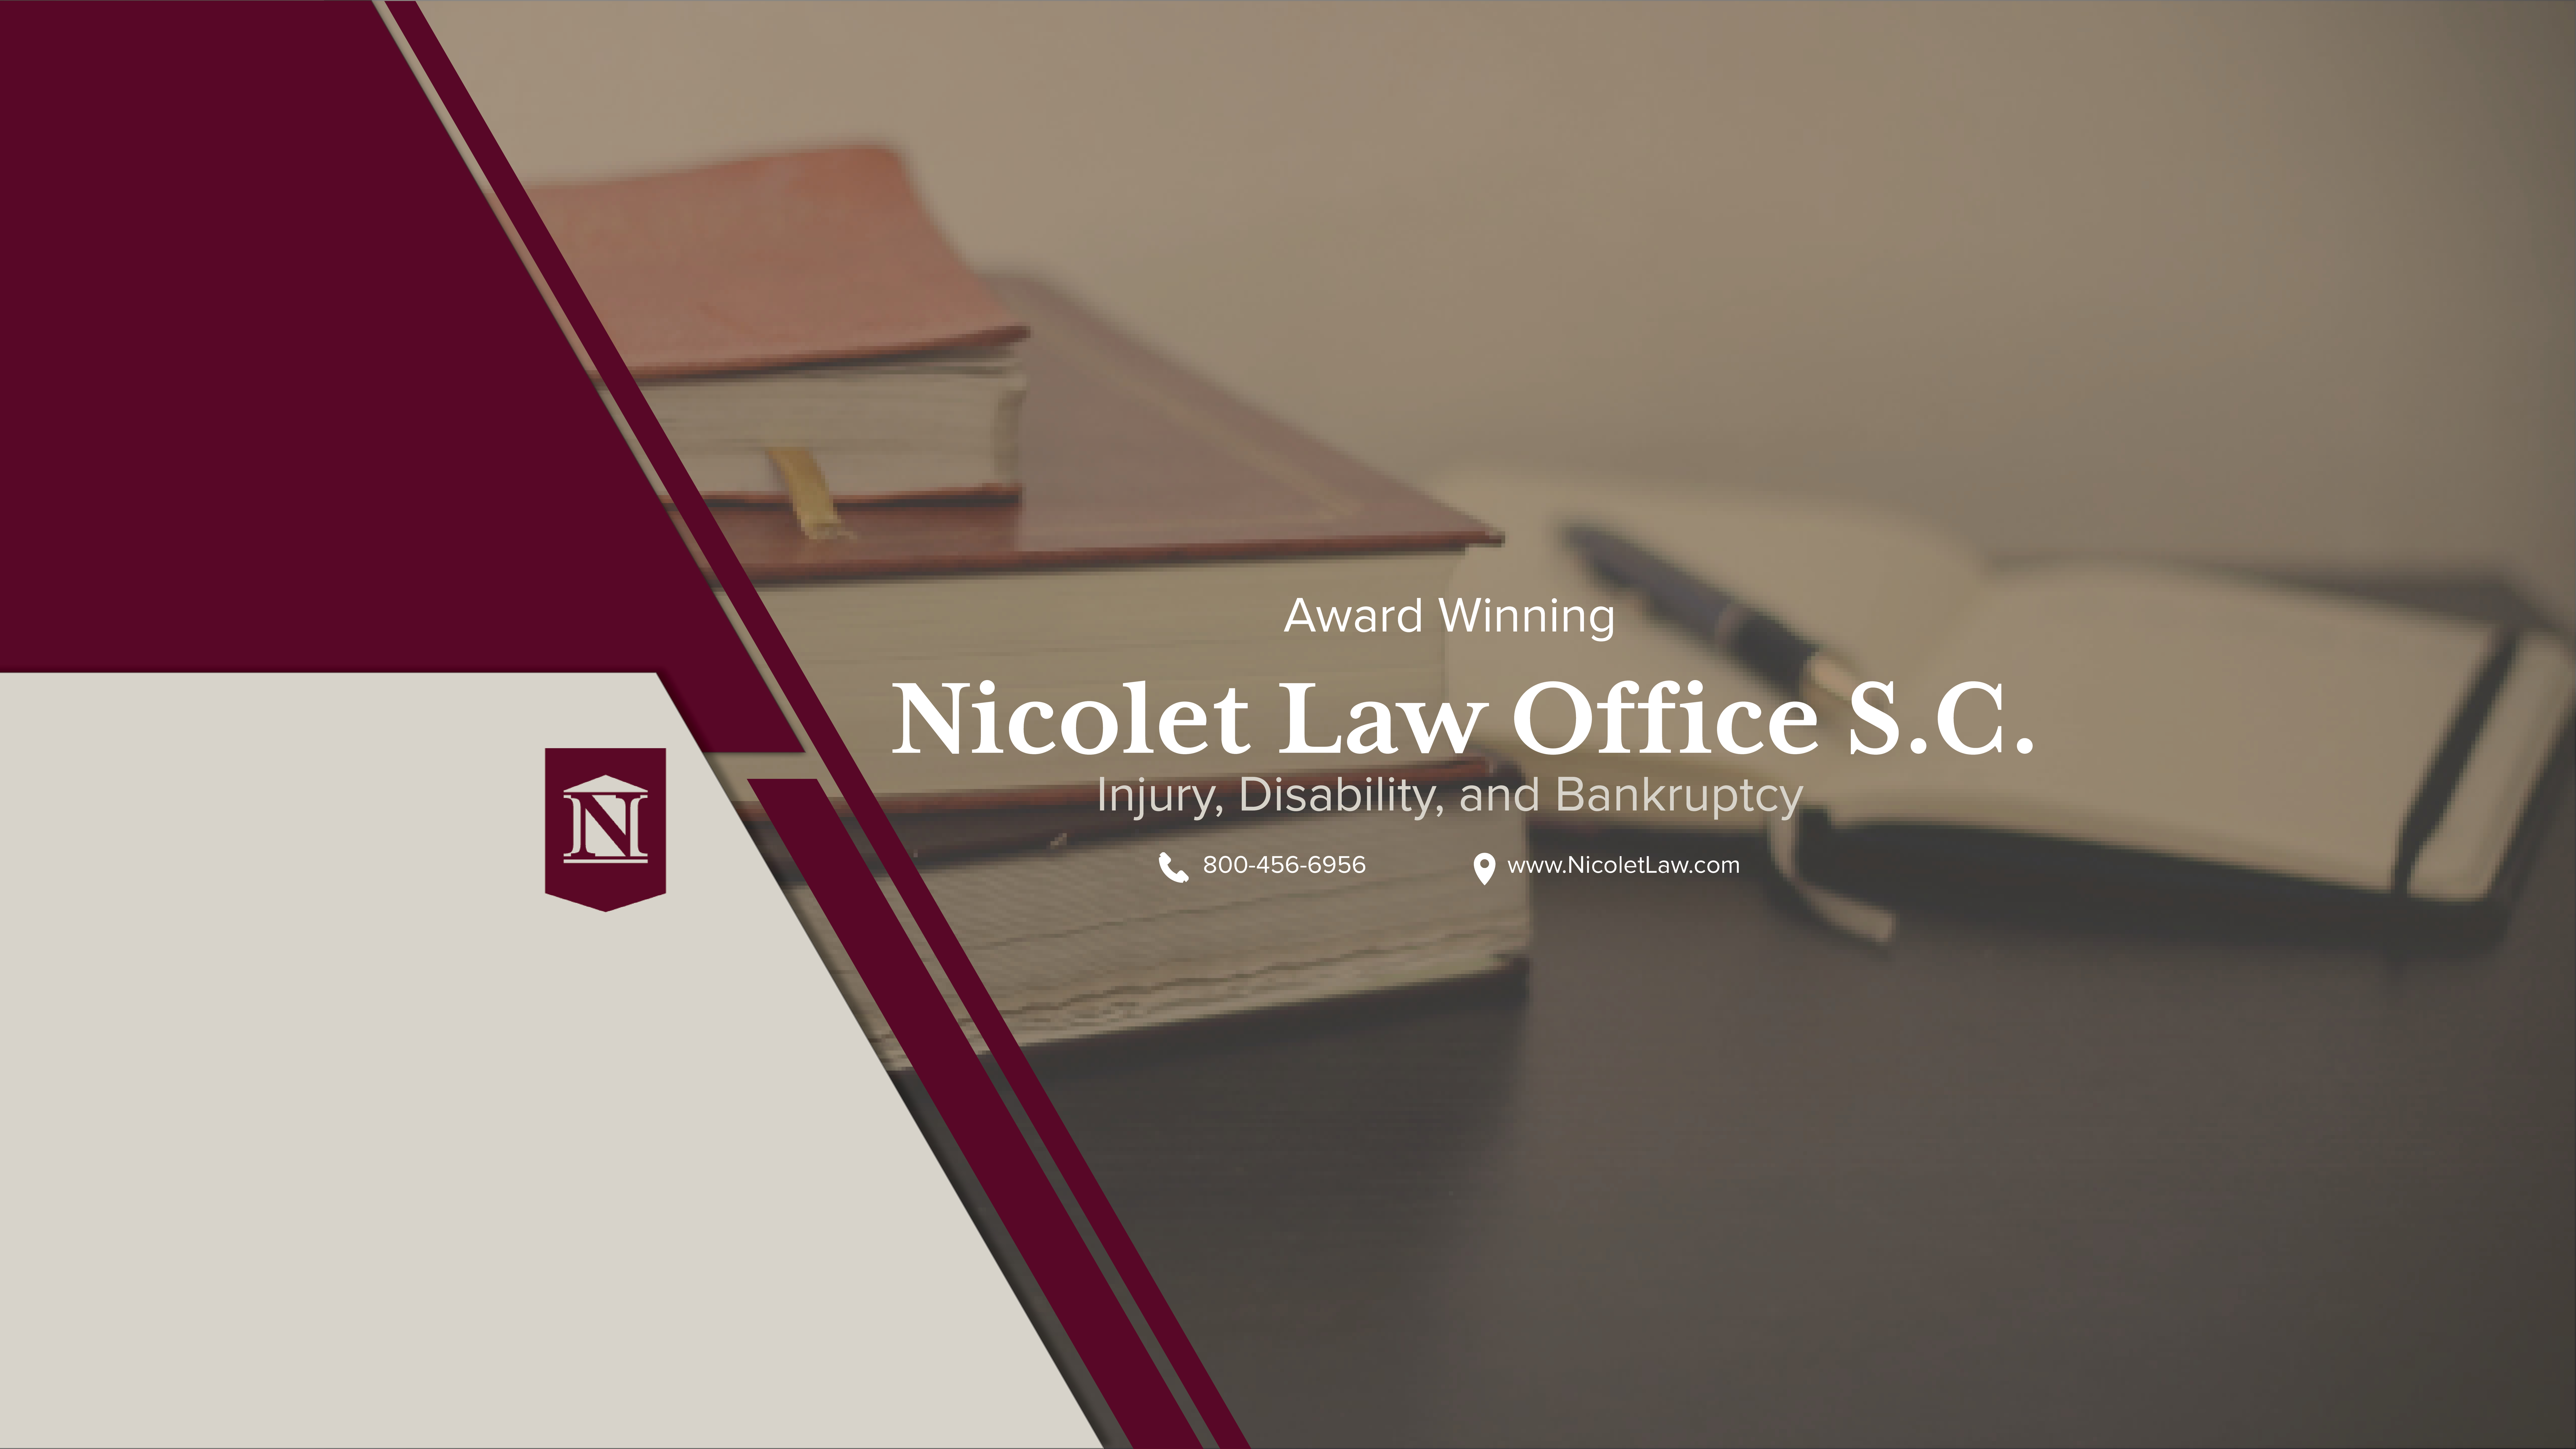 Nicolet Law Office, S.C. reviews | Lawyers at 1720 N 12th Street - Superior WI